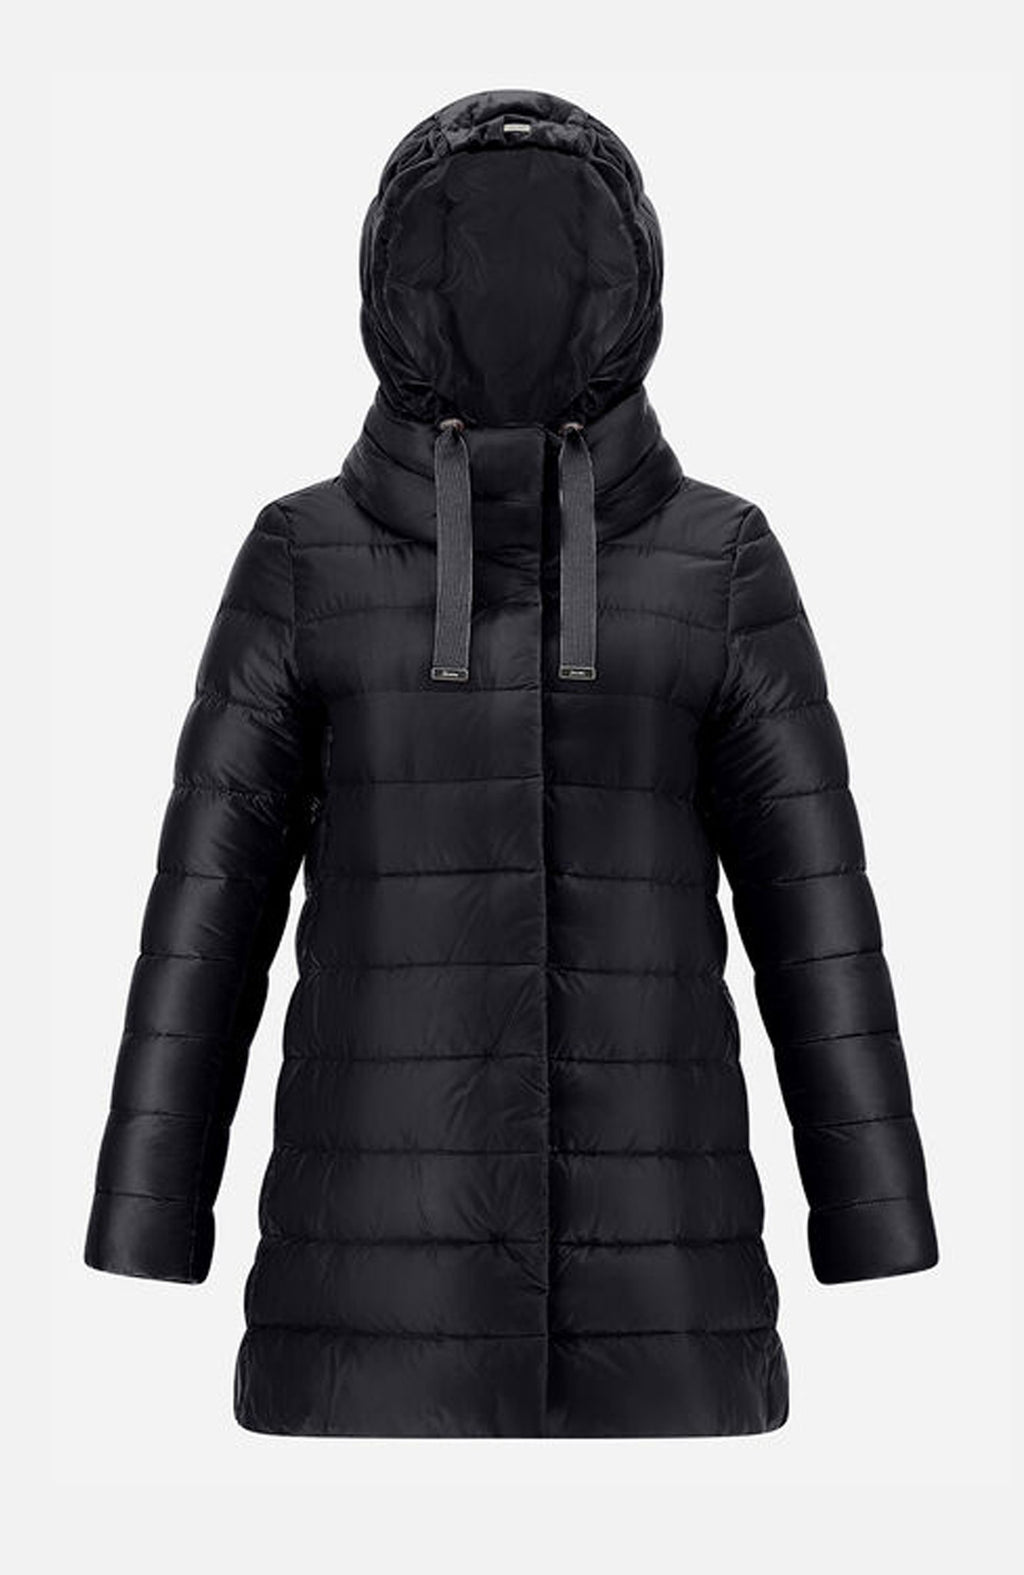 Herno Black Ultralight A-Shape Puffer Jacket